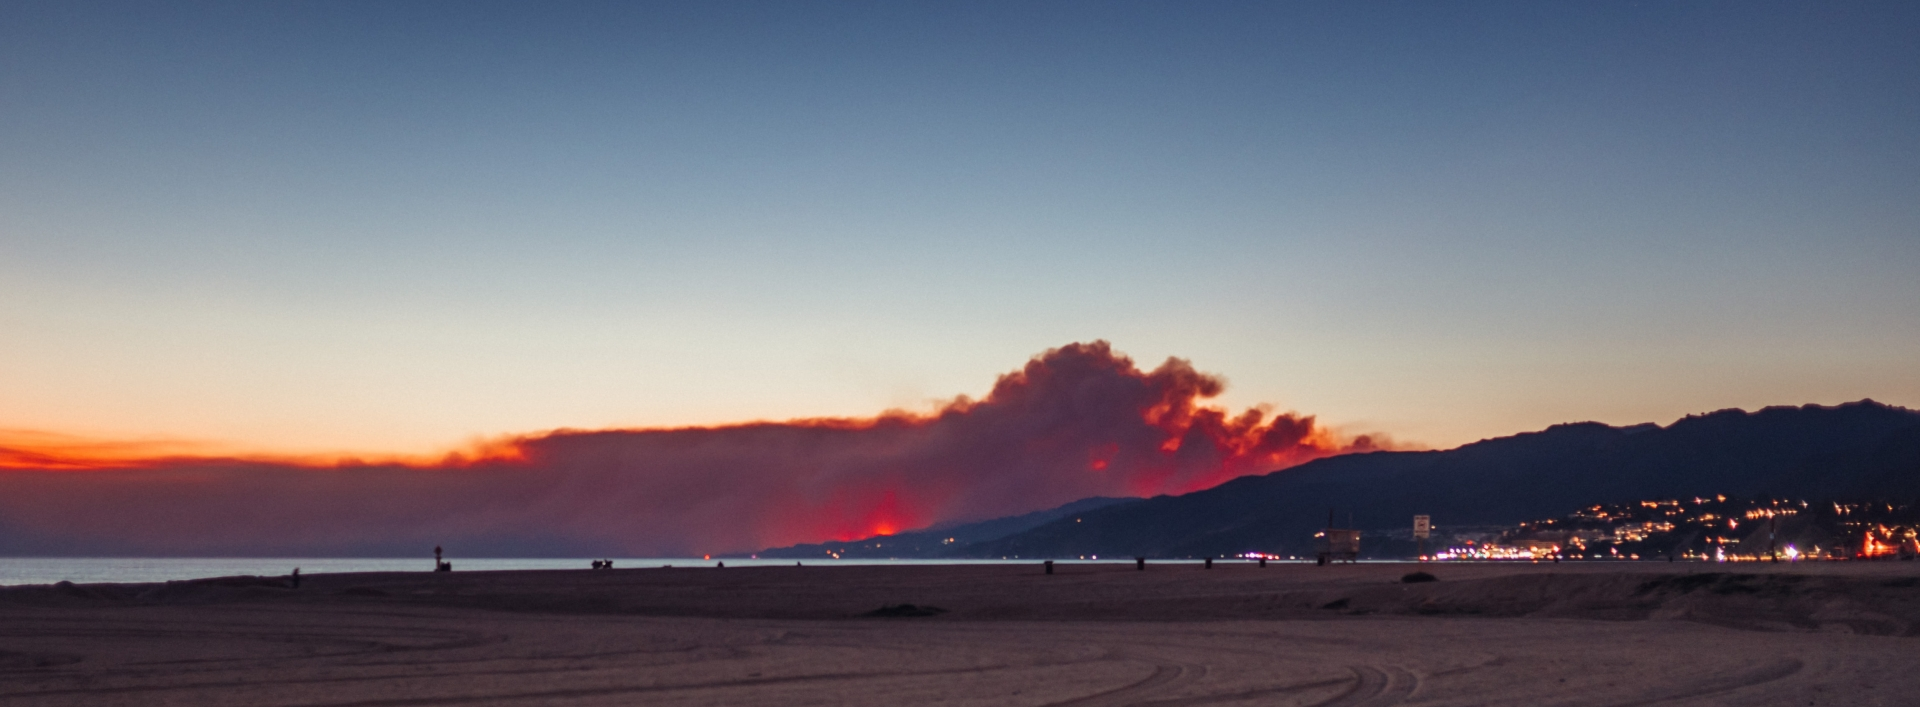 Wildfire smoke looms over hills of a seaside town